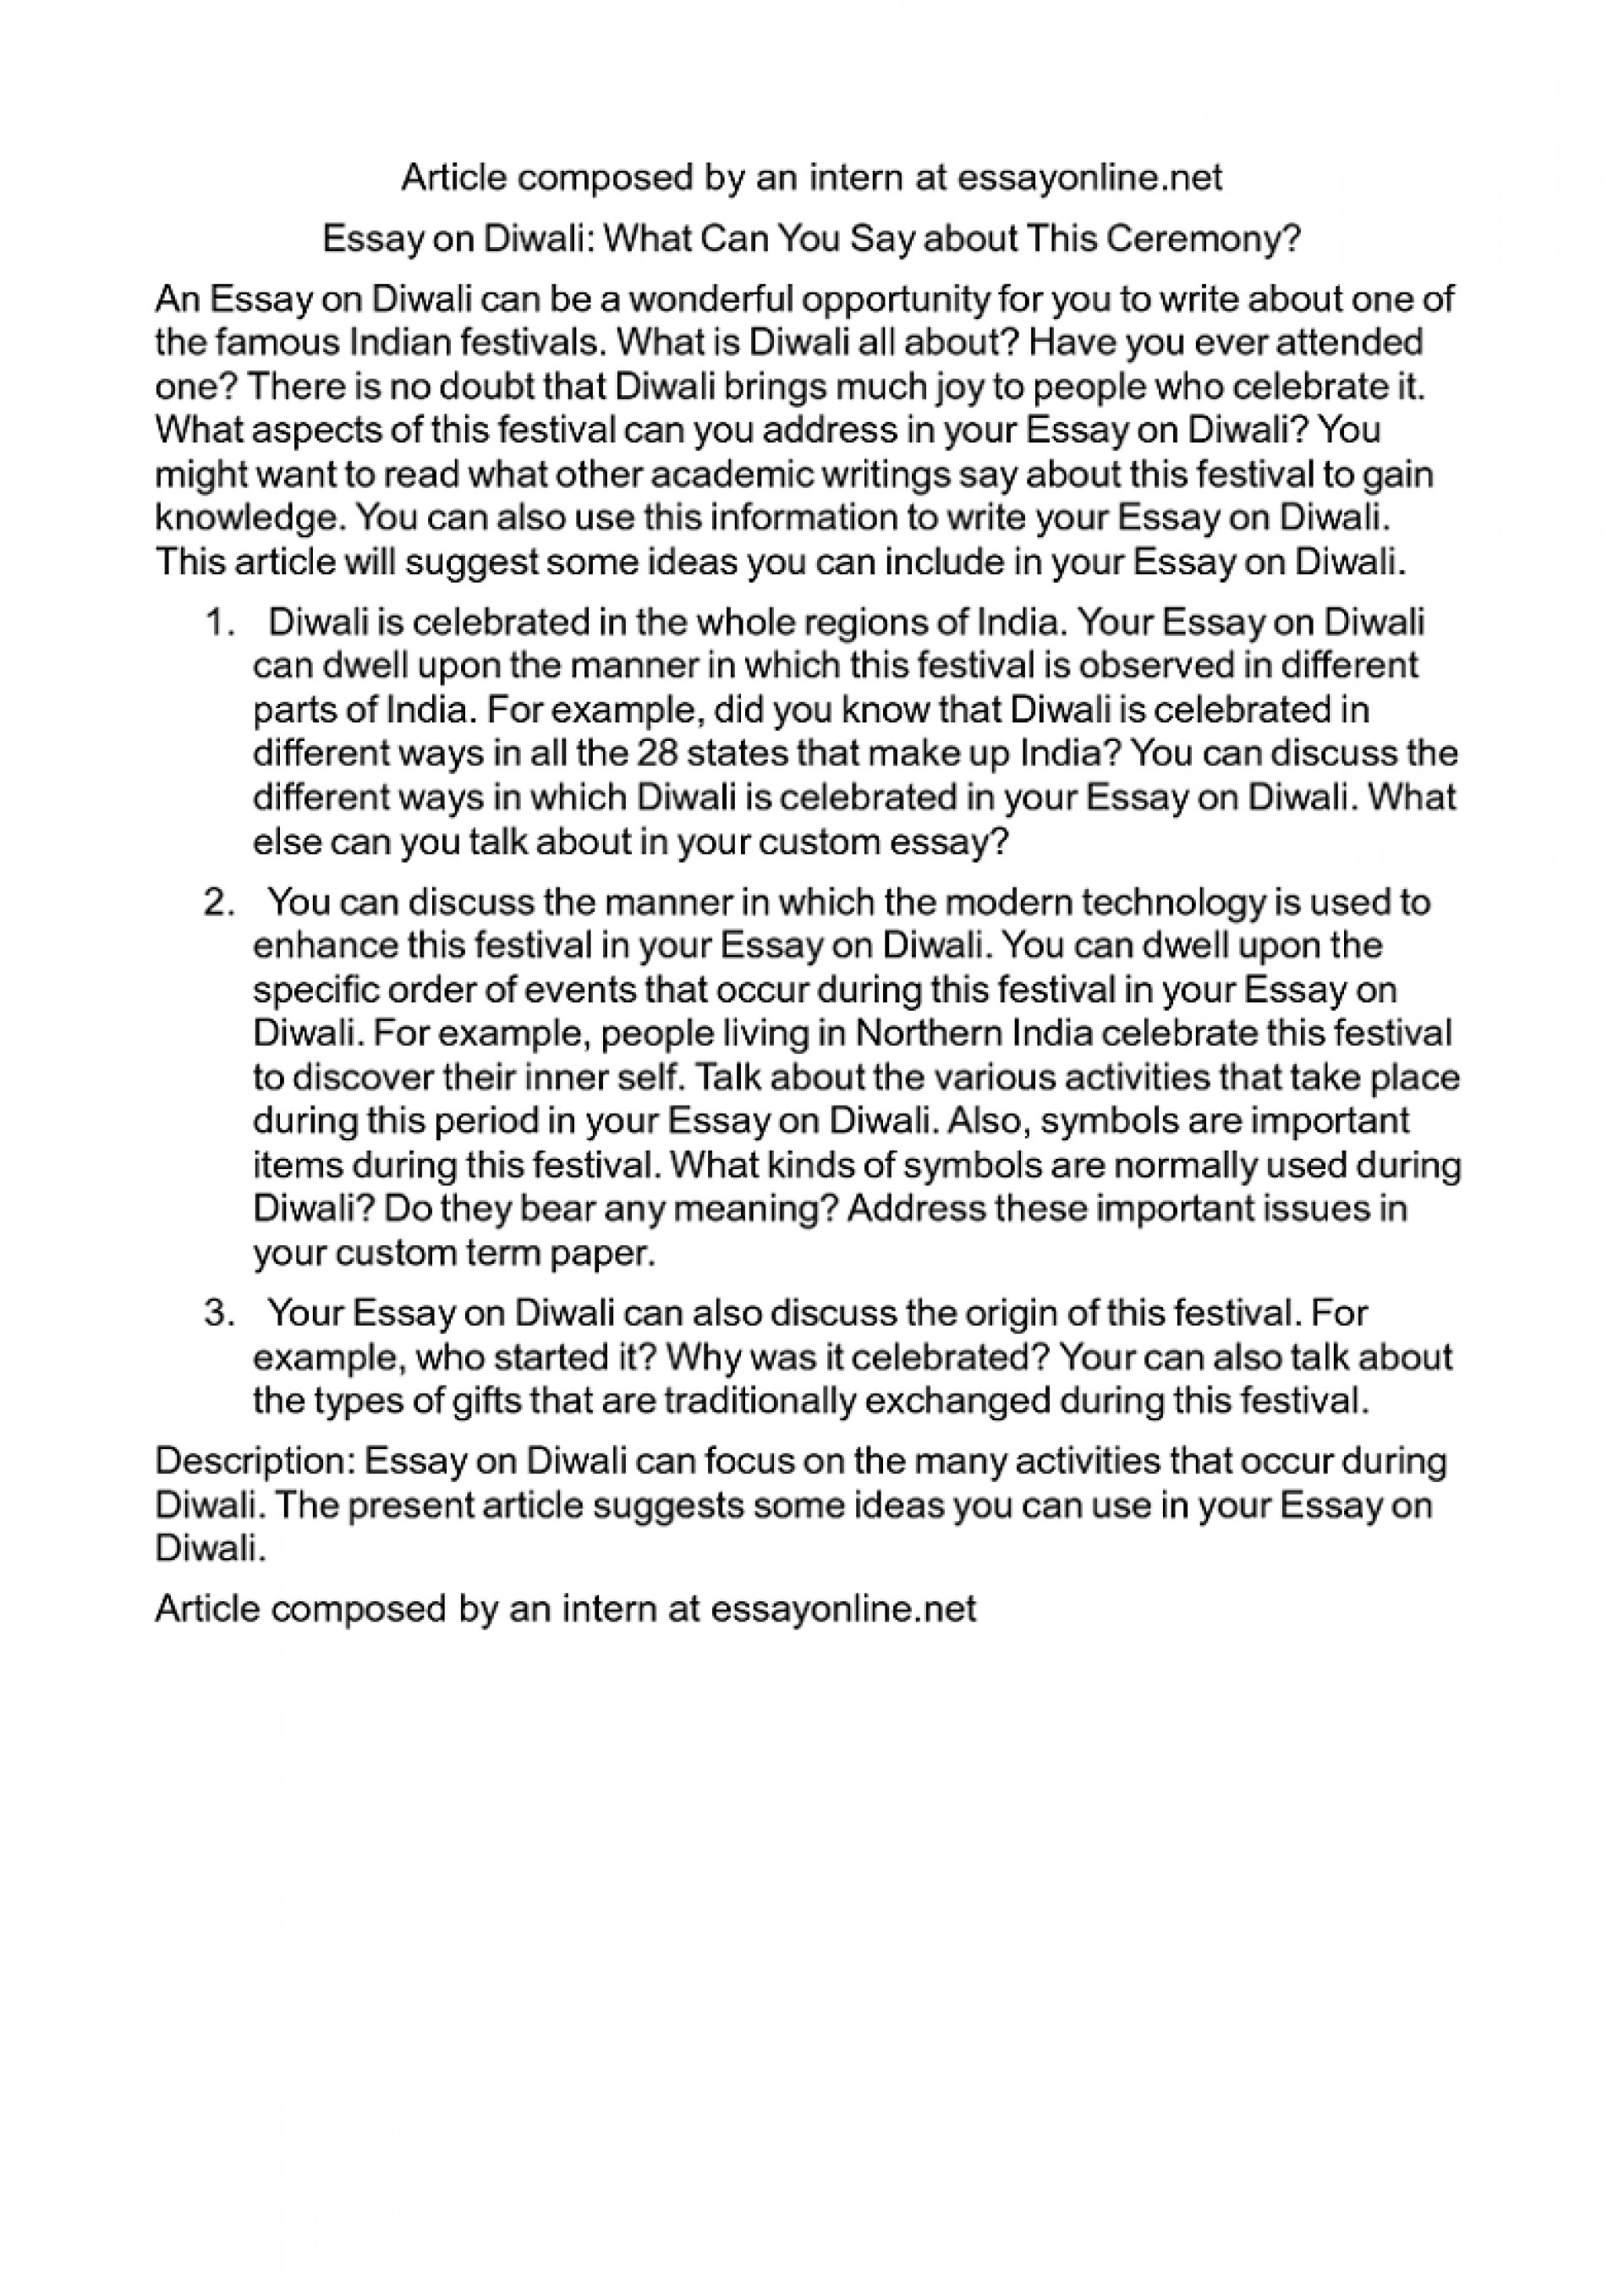 004 Essay Example Simple On Diwali In English For Class Striking 1 My Favourite Festival 1920